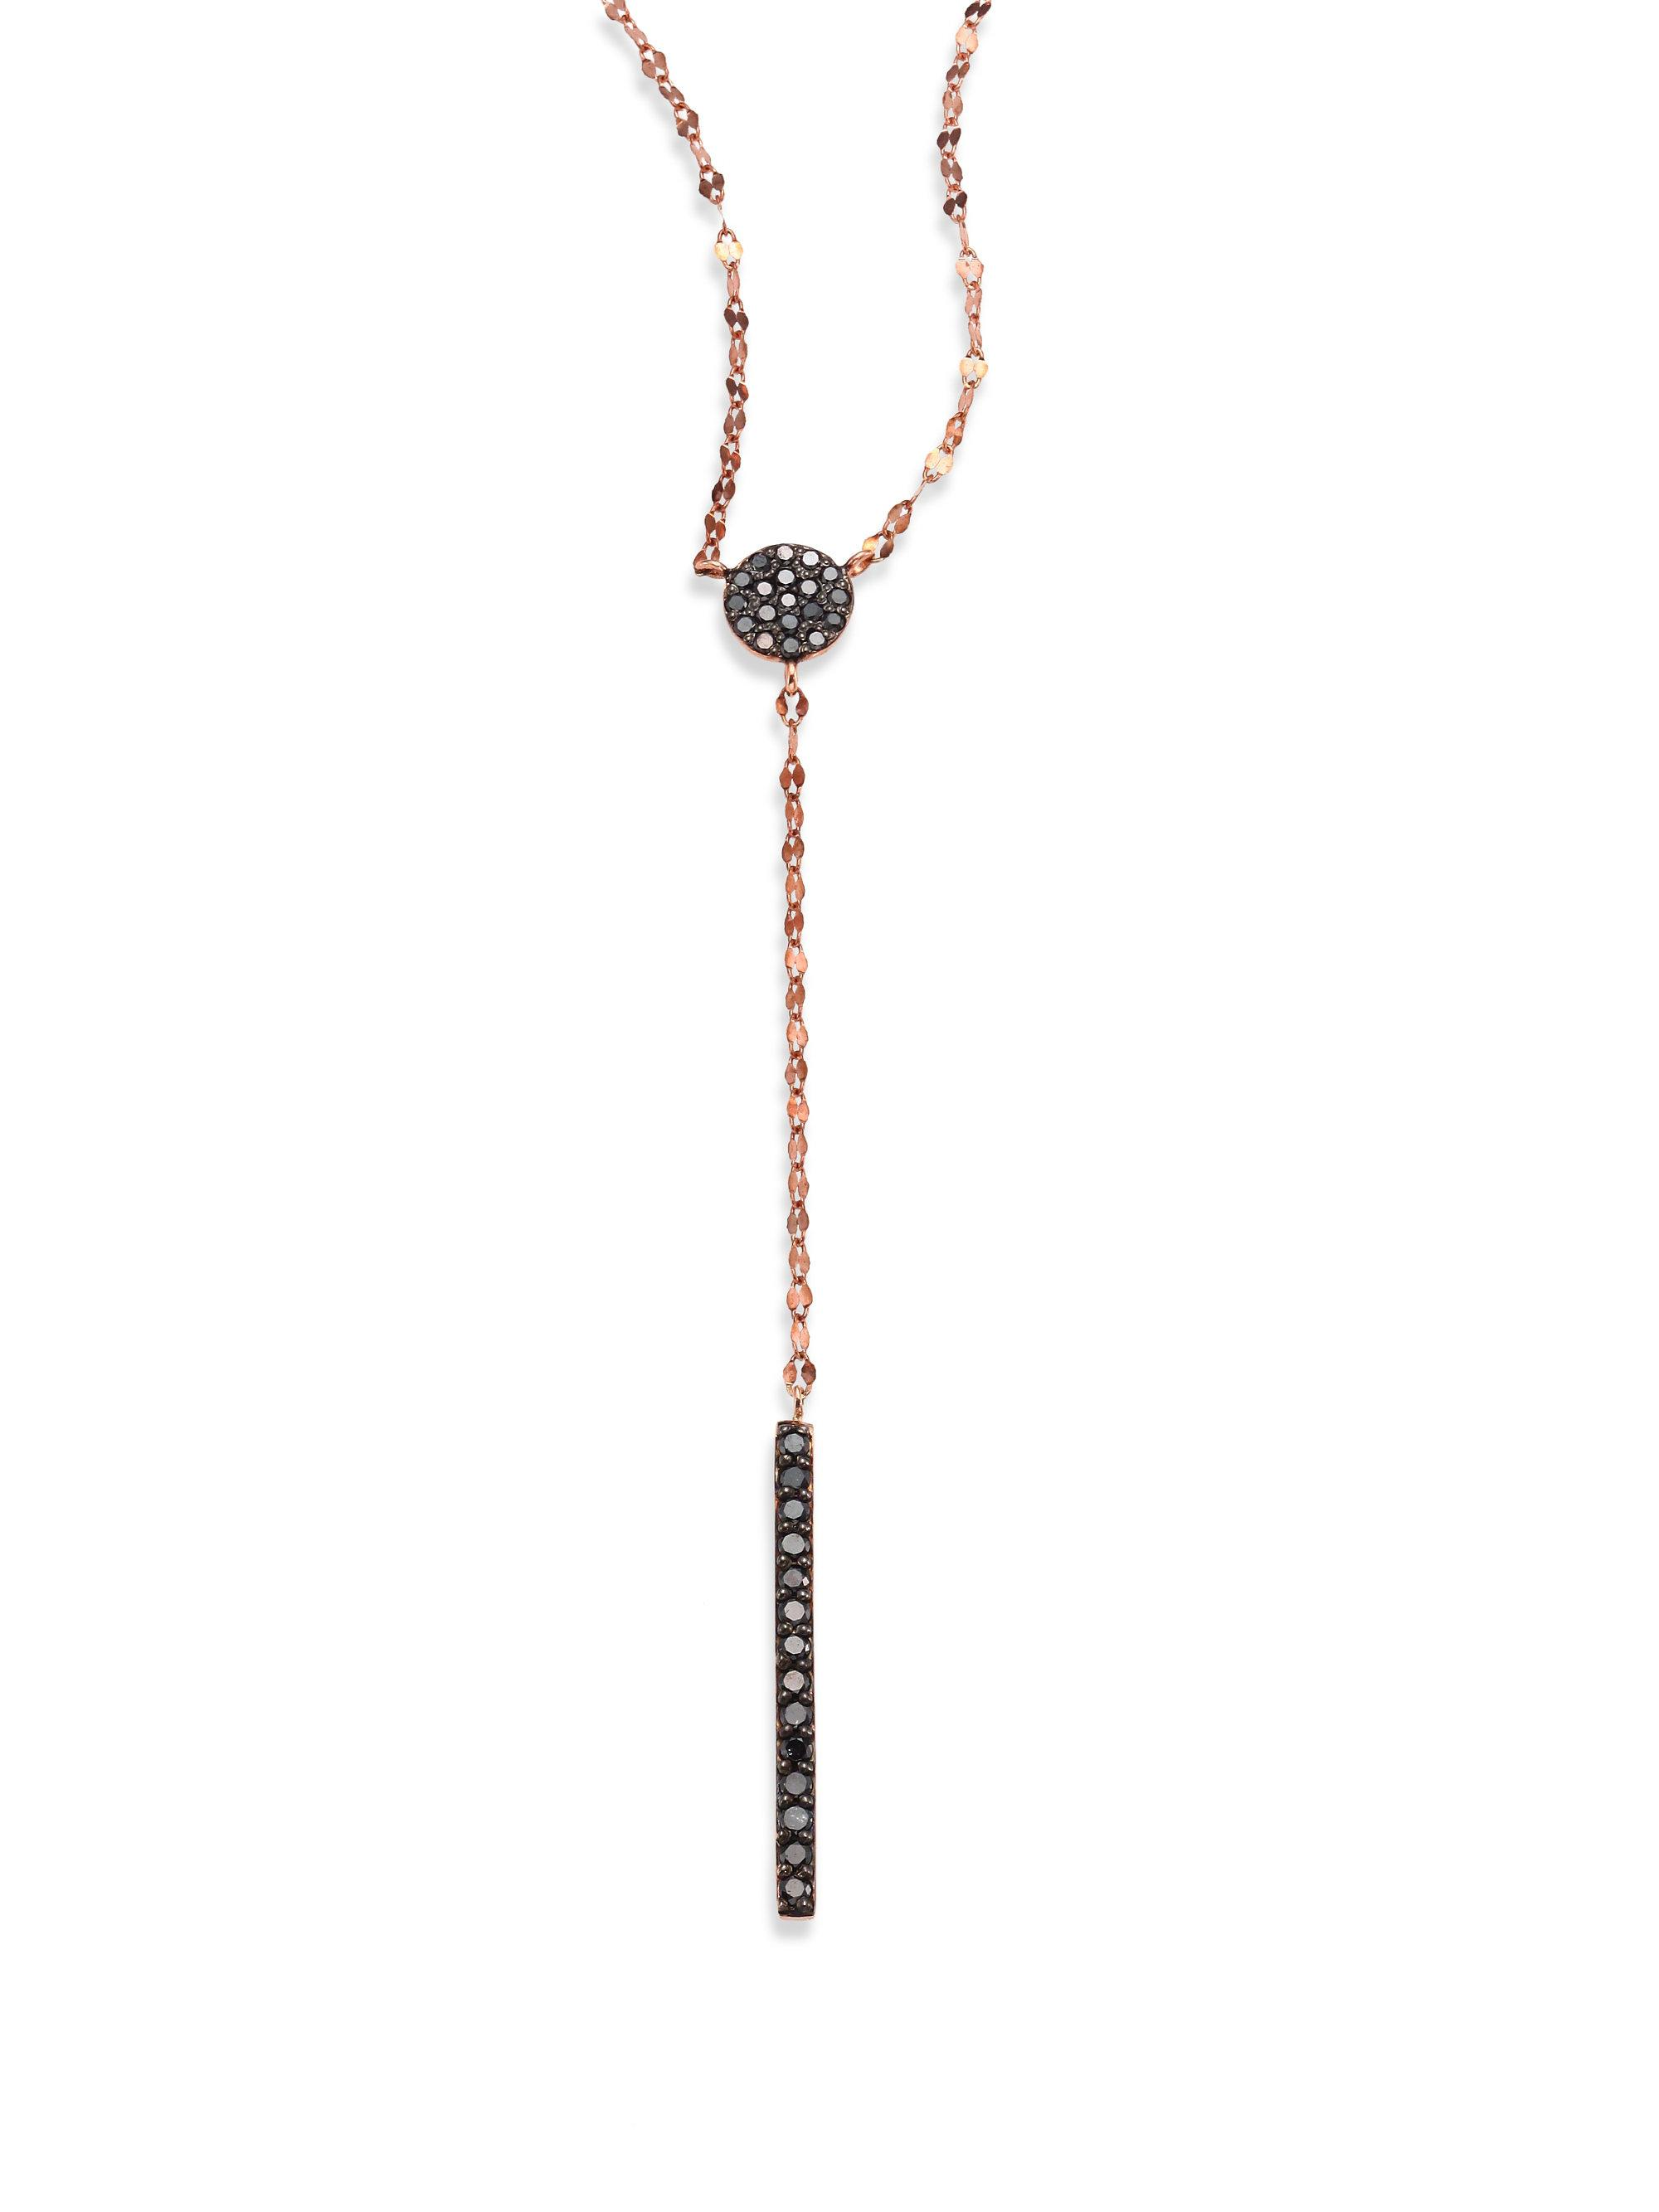 Lana Jewelry Reckless Vol. 2 14K Rose Gold Circle Bar Lariat Necklace with Black Diamonds gBae3o9